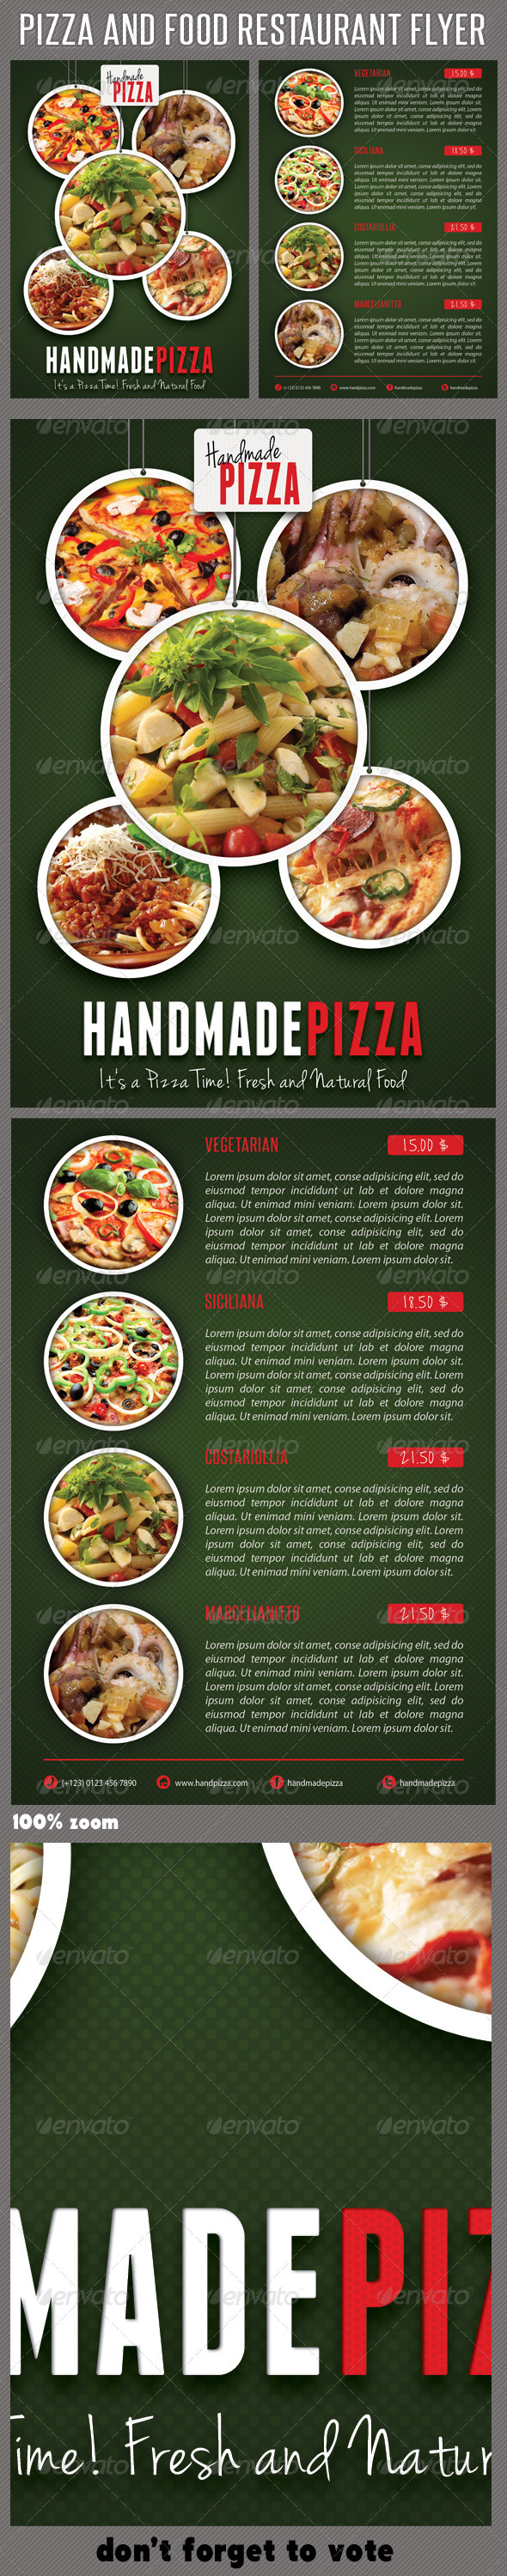 Food And Pizza Menu Flyer 03 - Restaurant Flyers